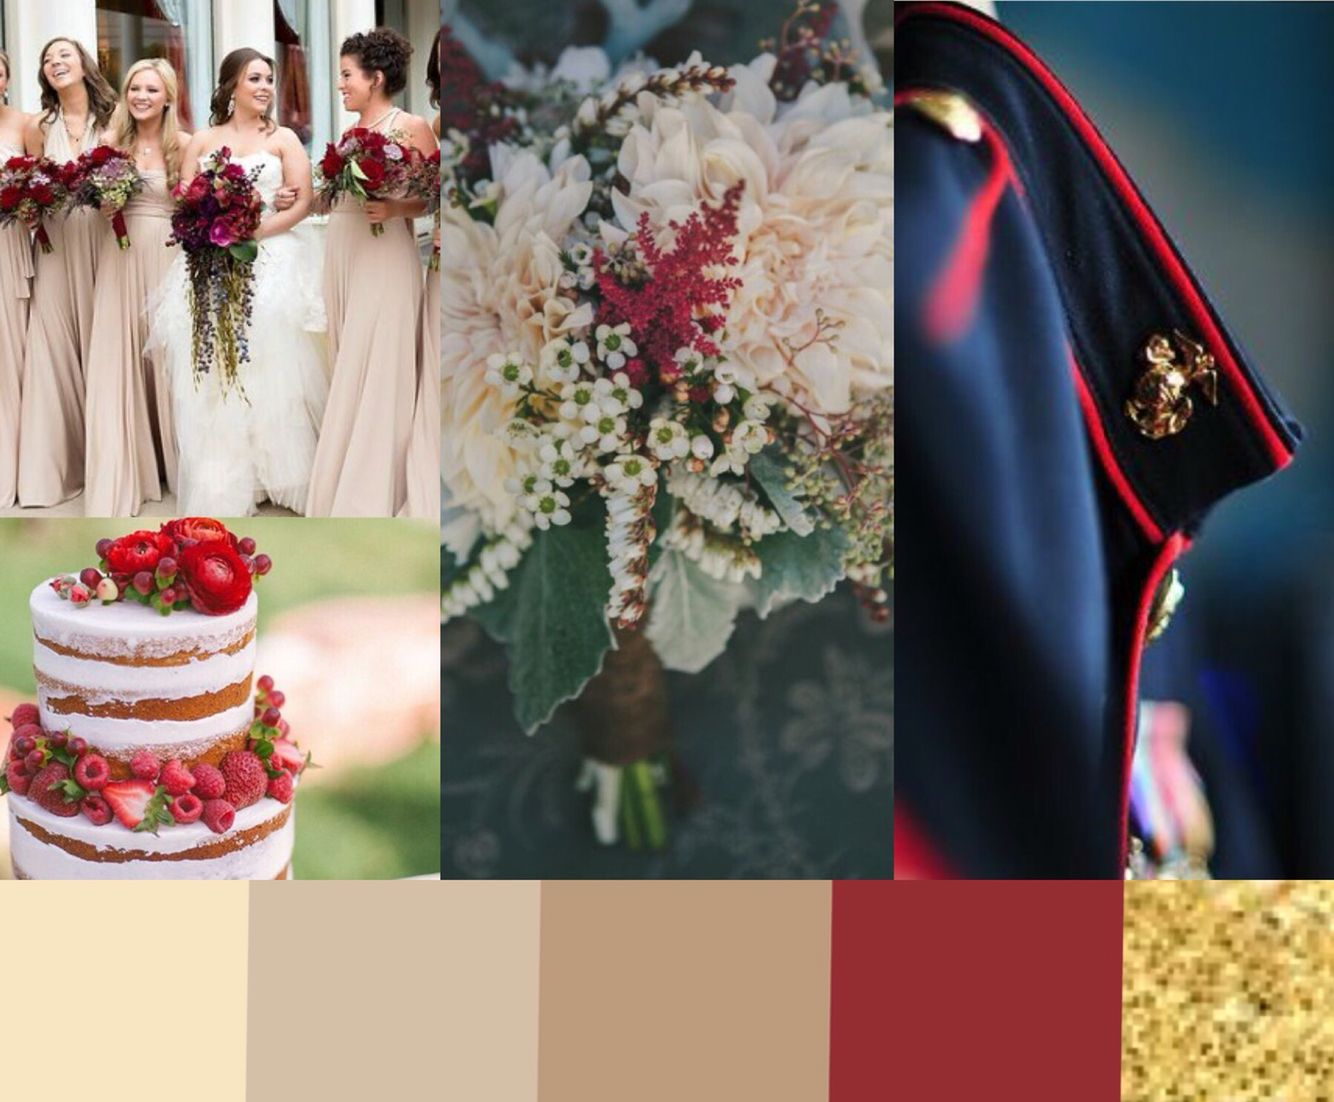 Usmc Wedding Color Scheme Without Looking Like The 4th Of July More